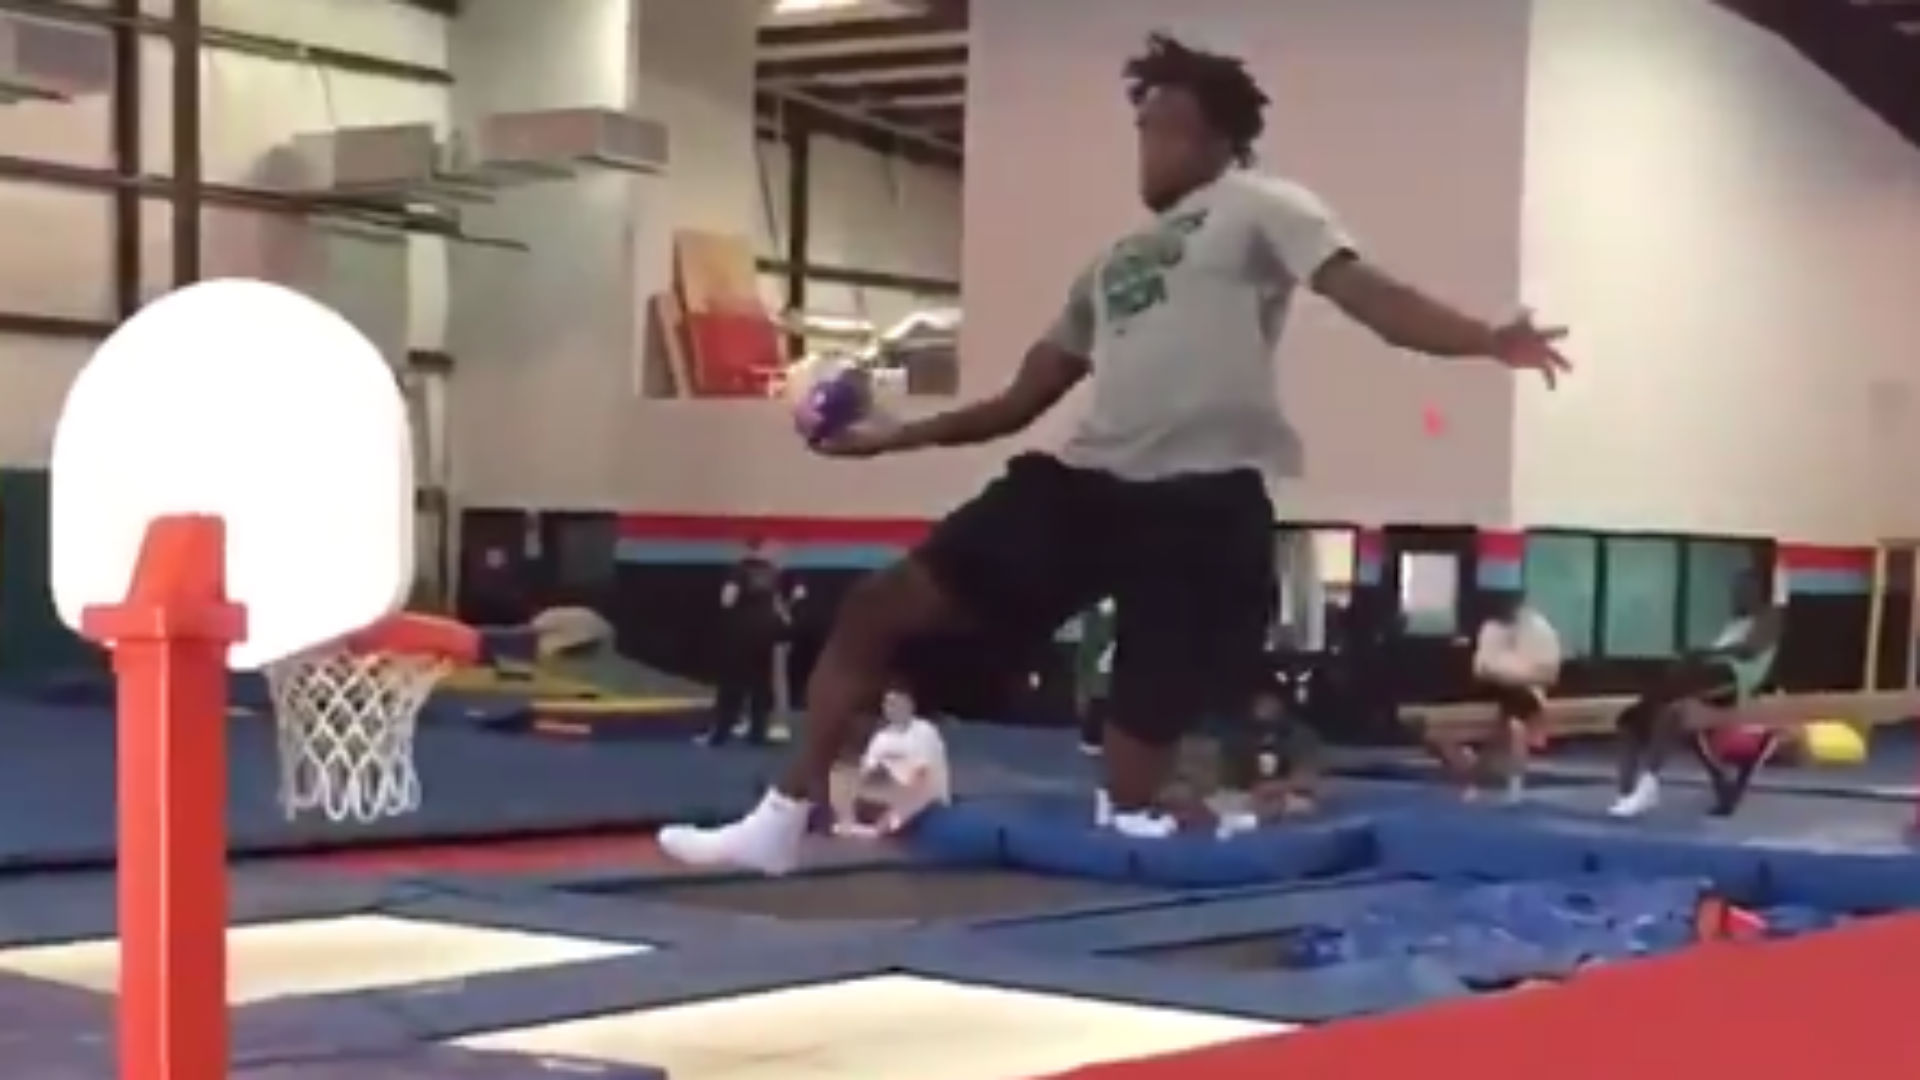 Baylor players spend offseason trampoline dunking